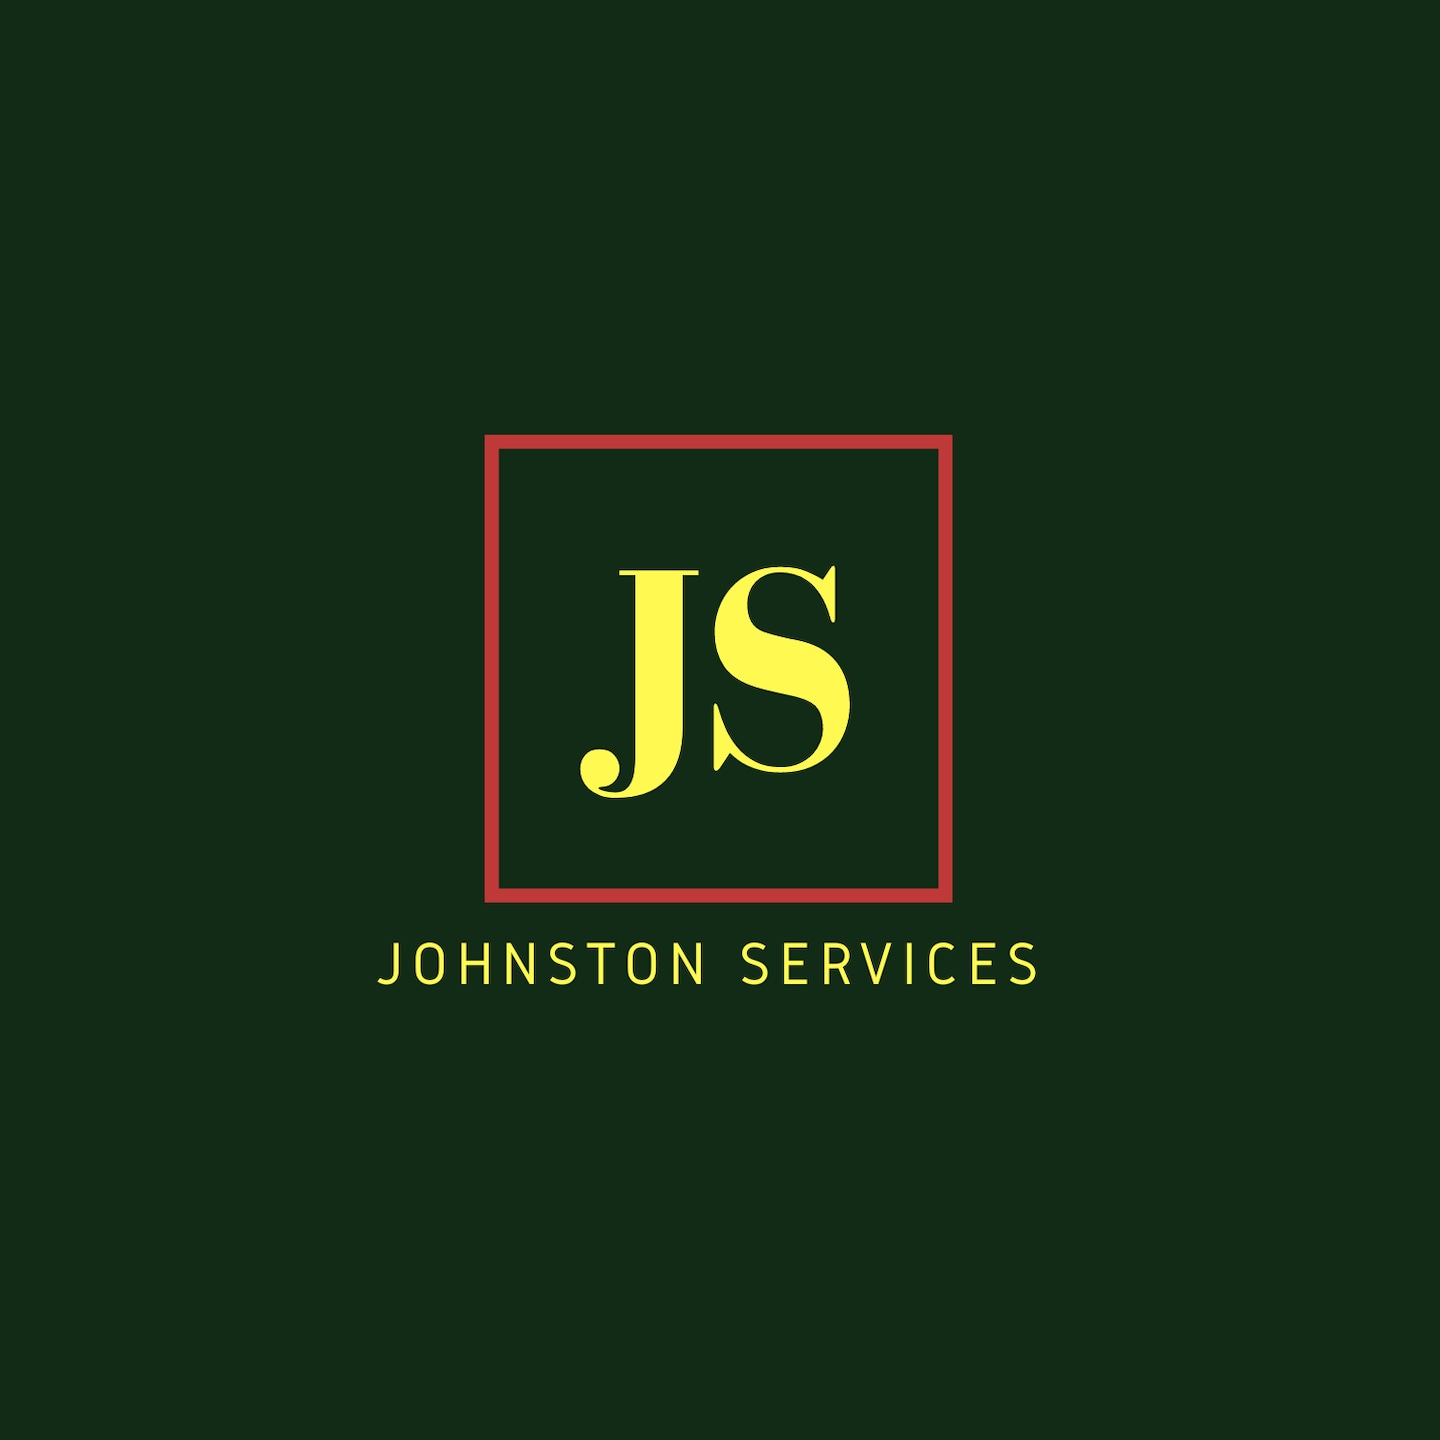 Johnston Services